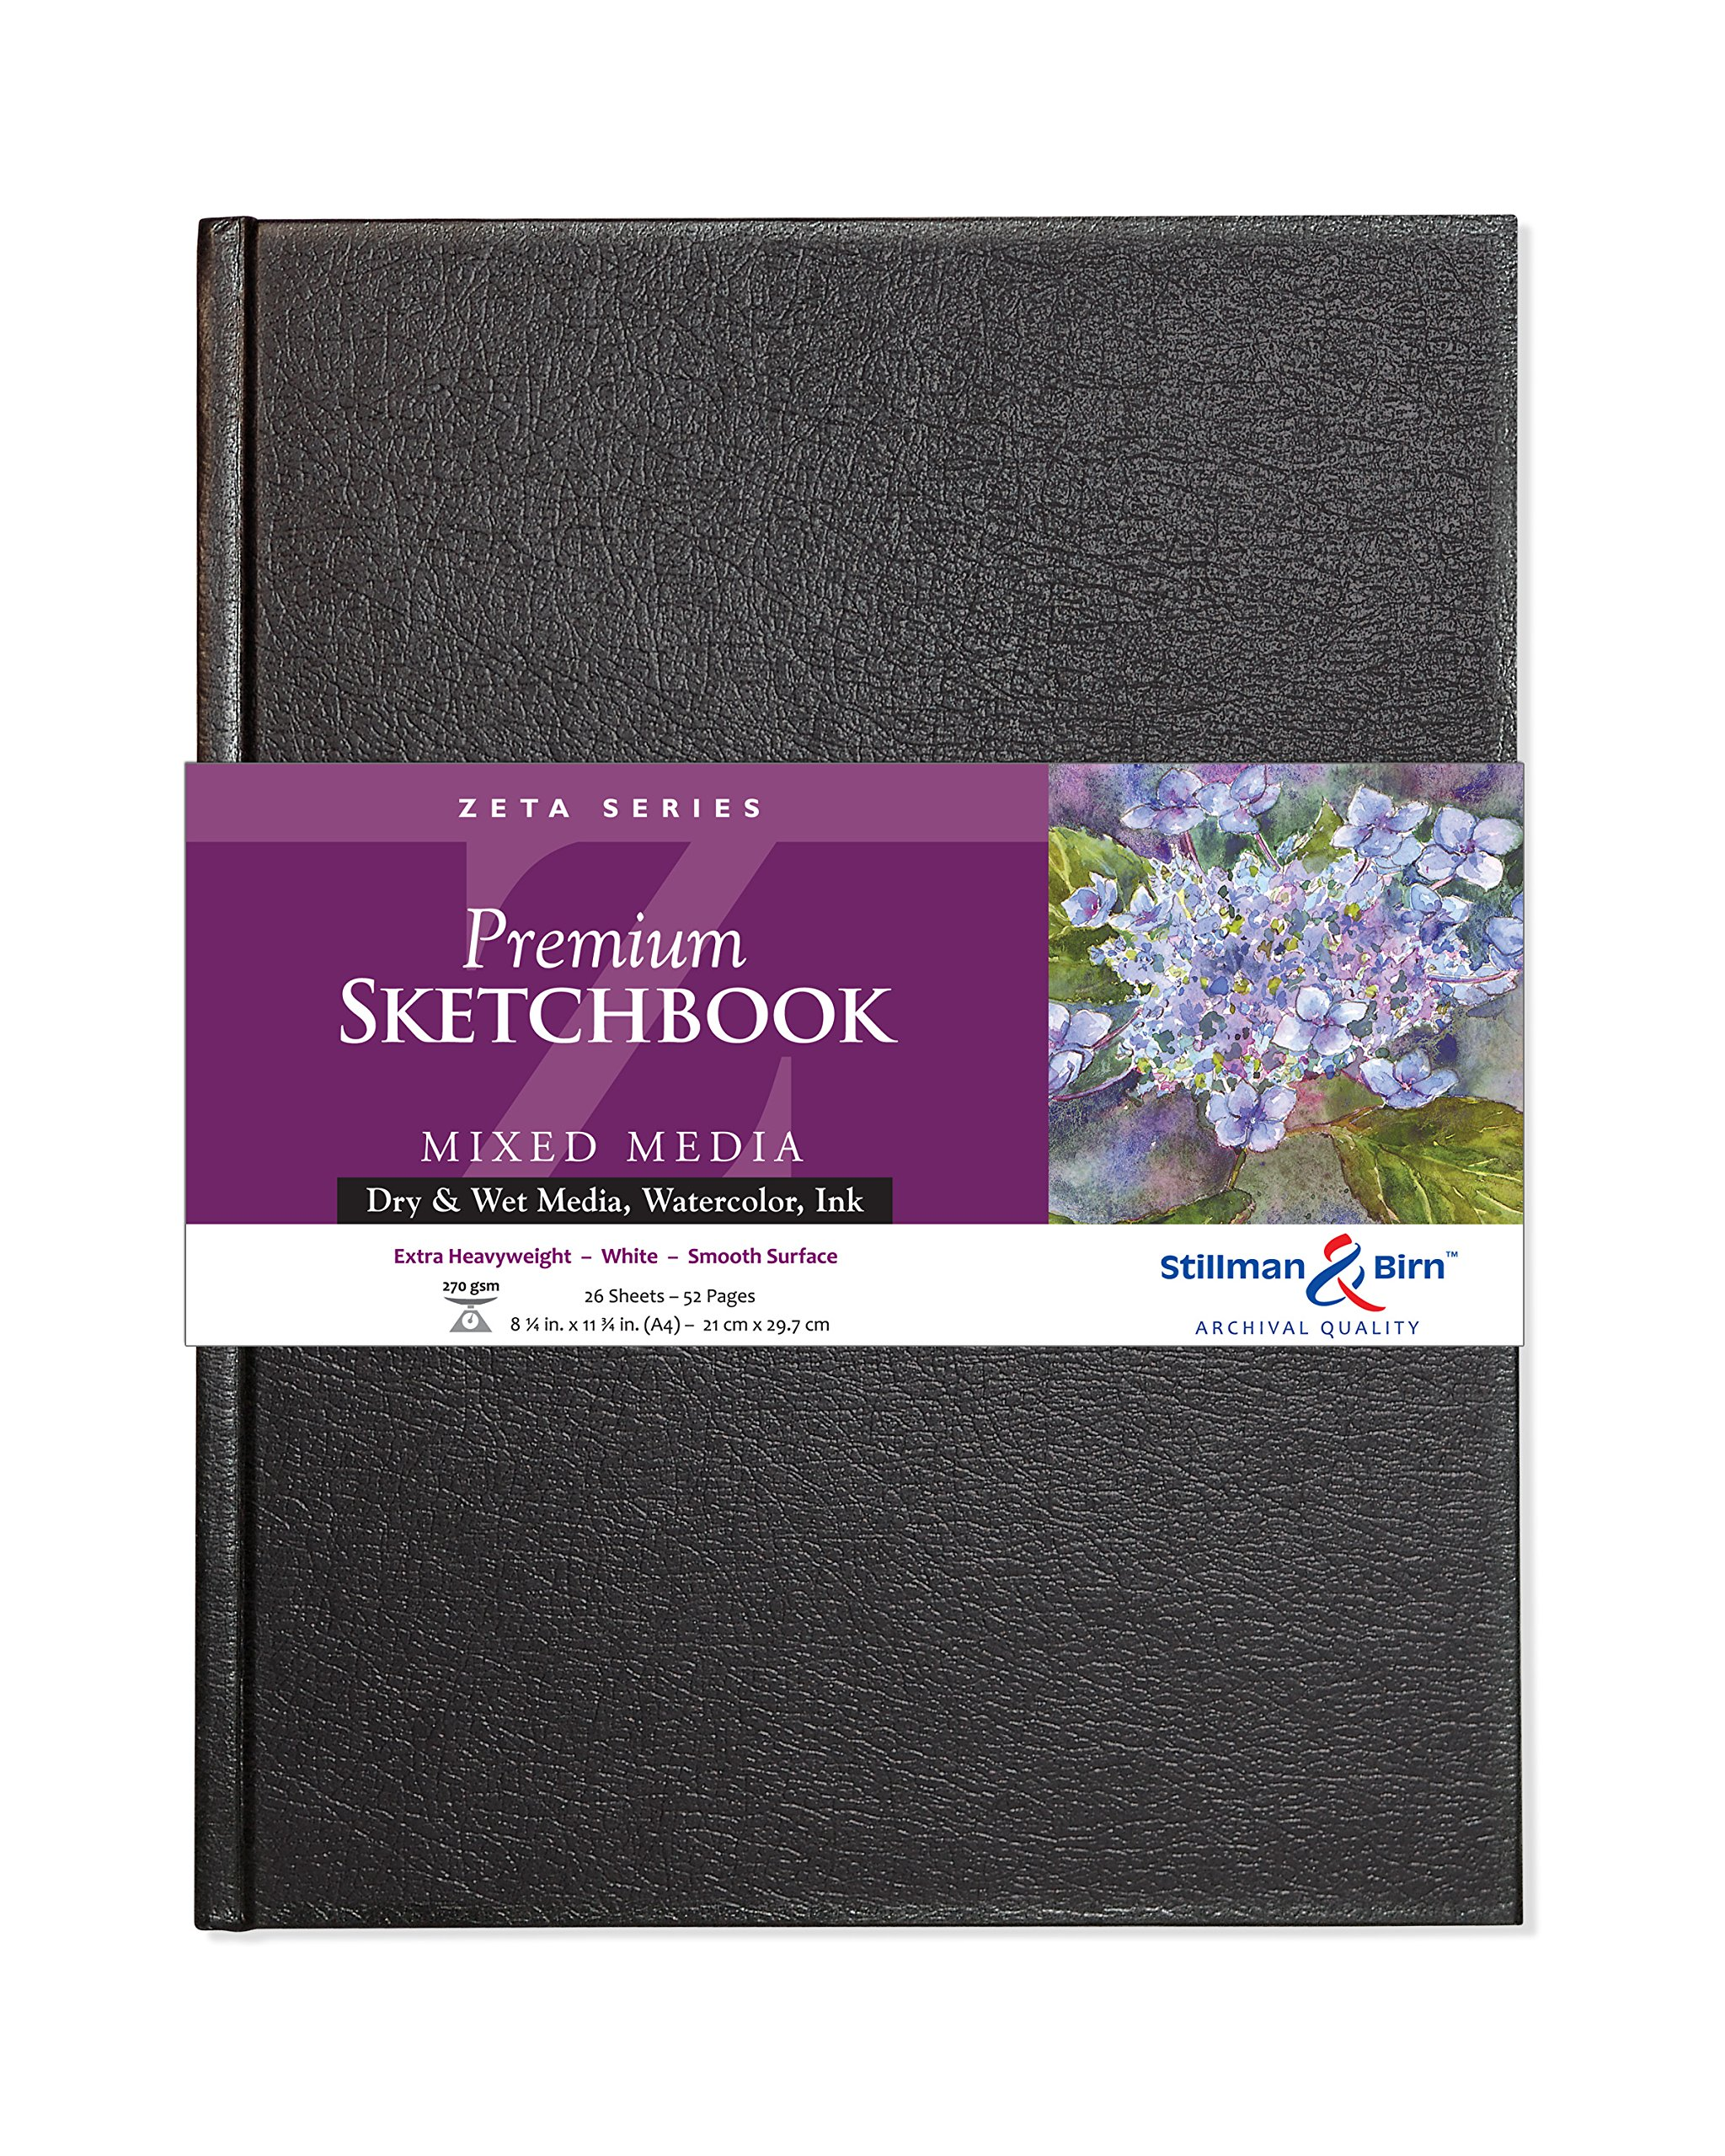 Stillman & Birn Zeta Series Hardbound Sketchbook, A4 (8.25'' x 11.75''), 270 GSM (Extra Heavyweight), White Paper, Smooth Surface by Stillman & Birn